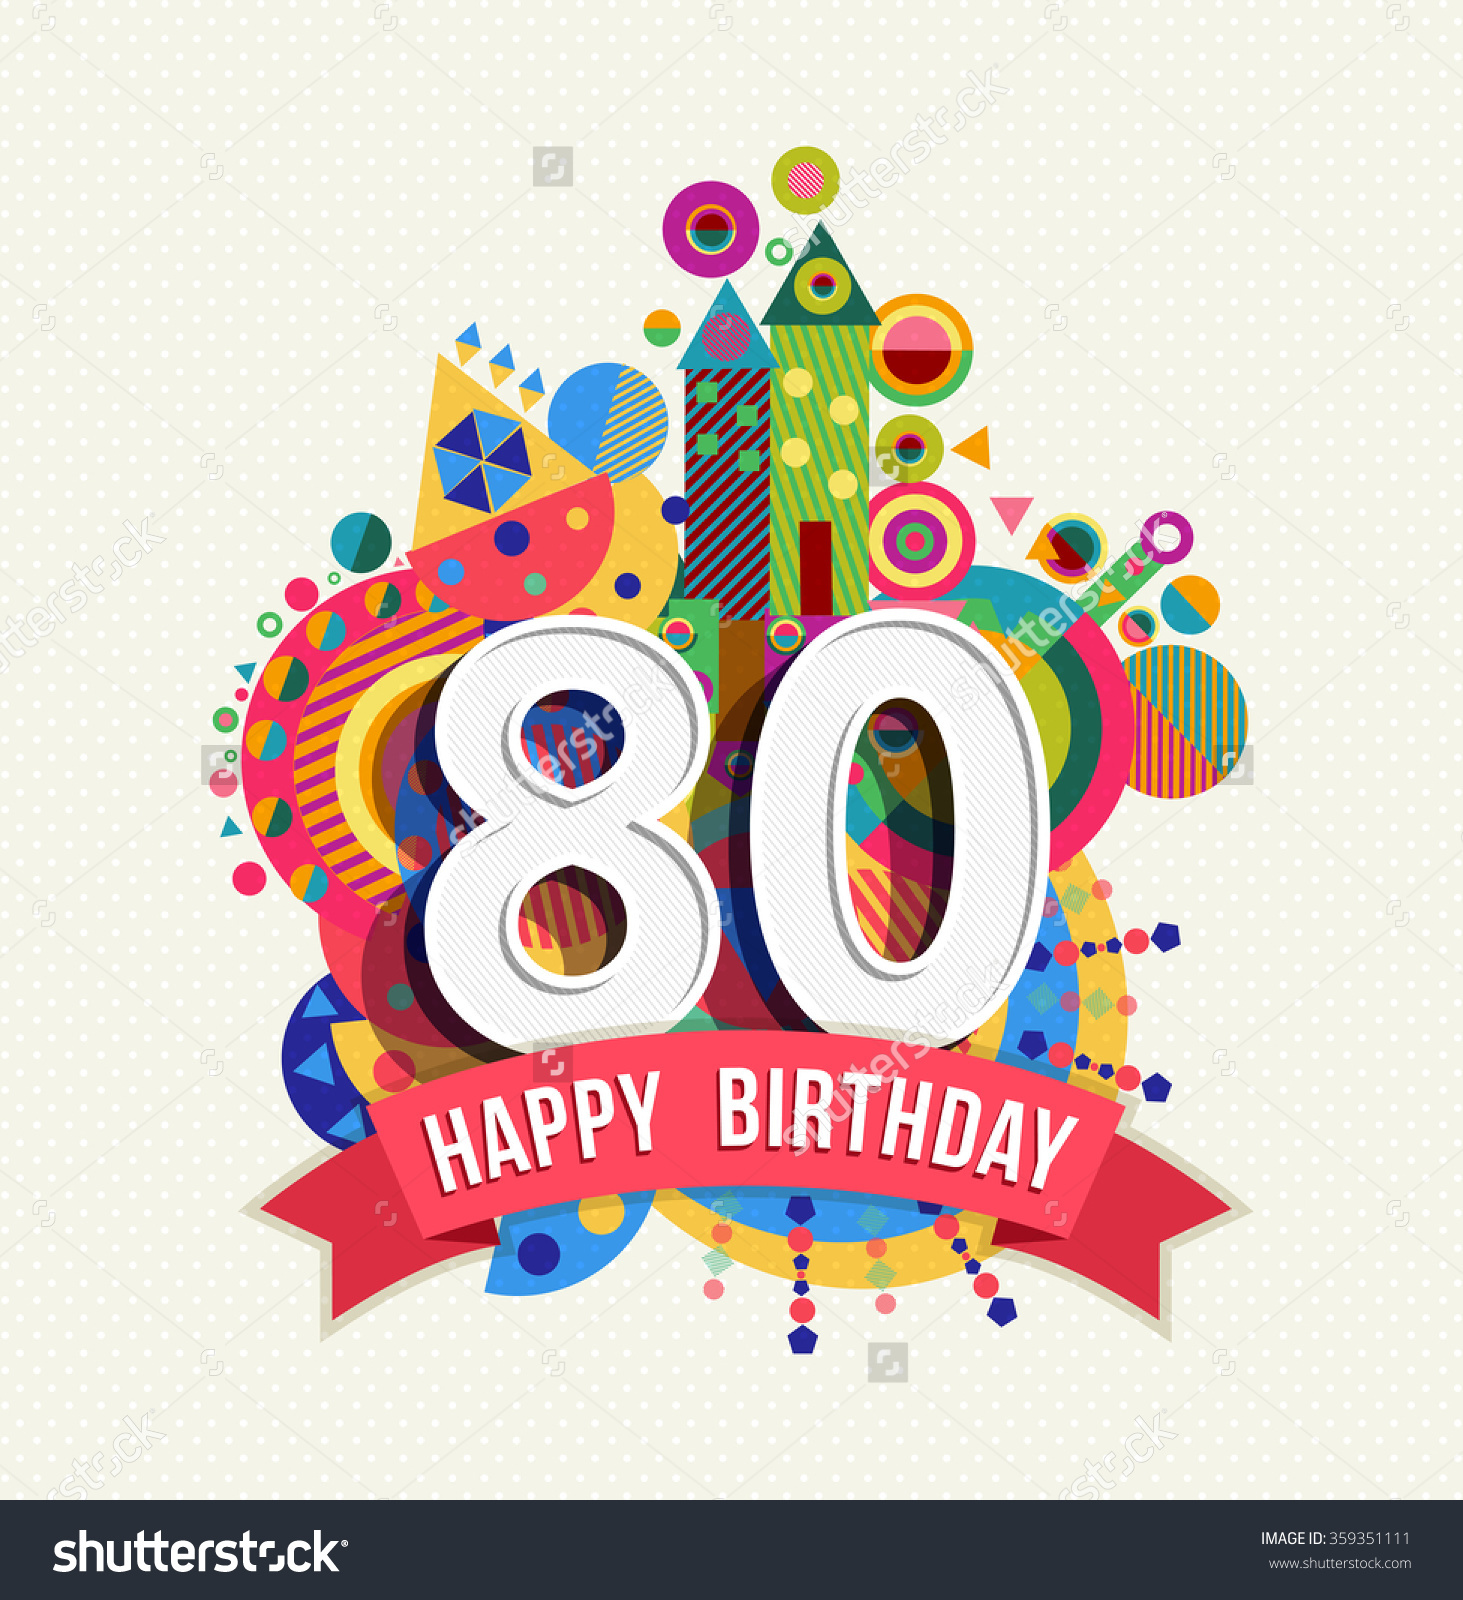 80 birthday clipart free 80 year old clipart - ClipartFest free